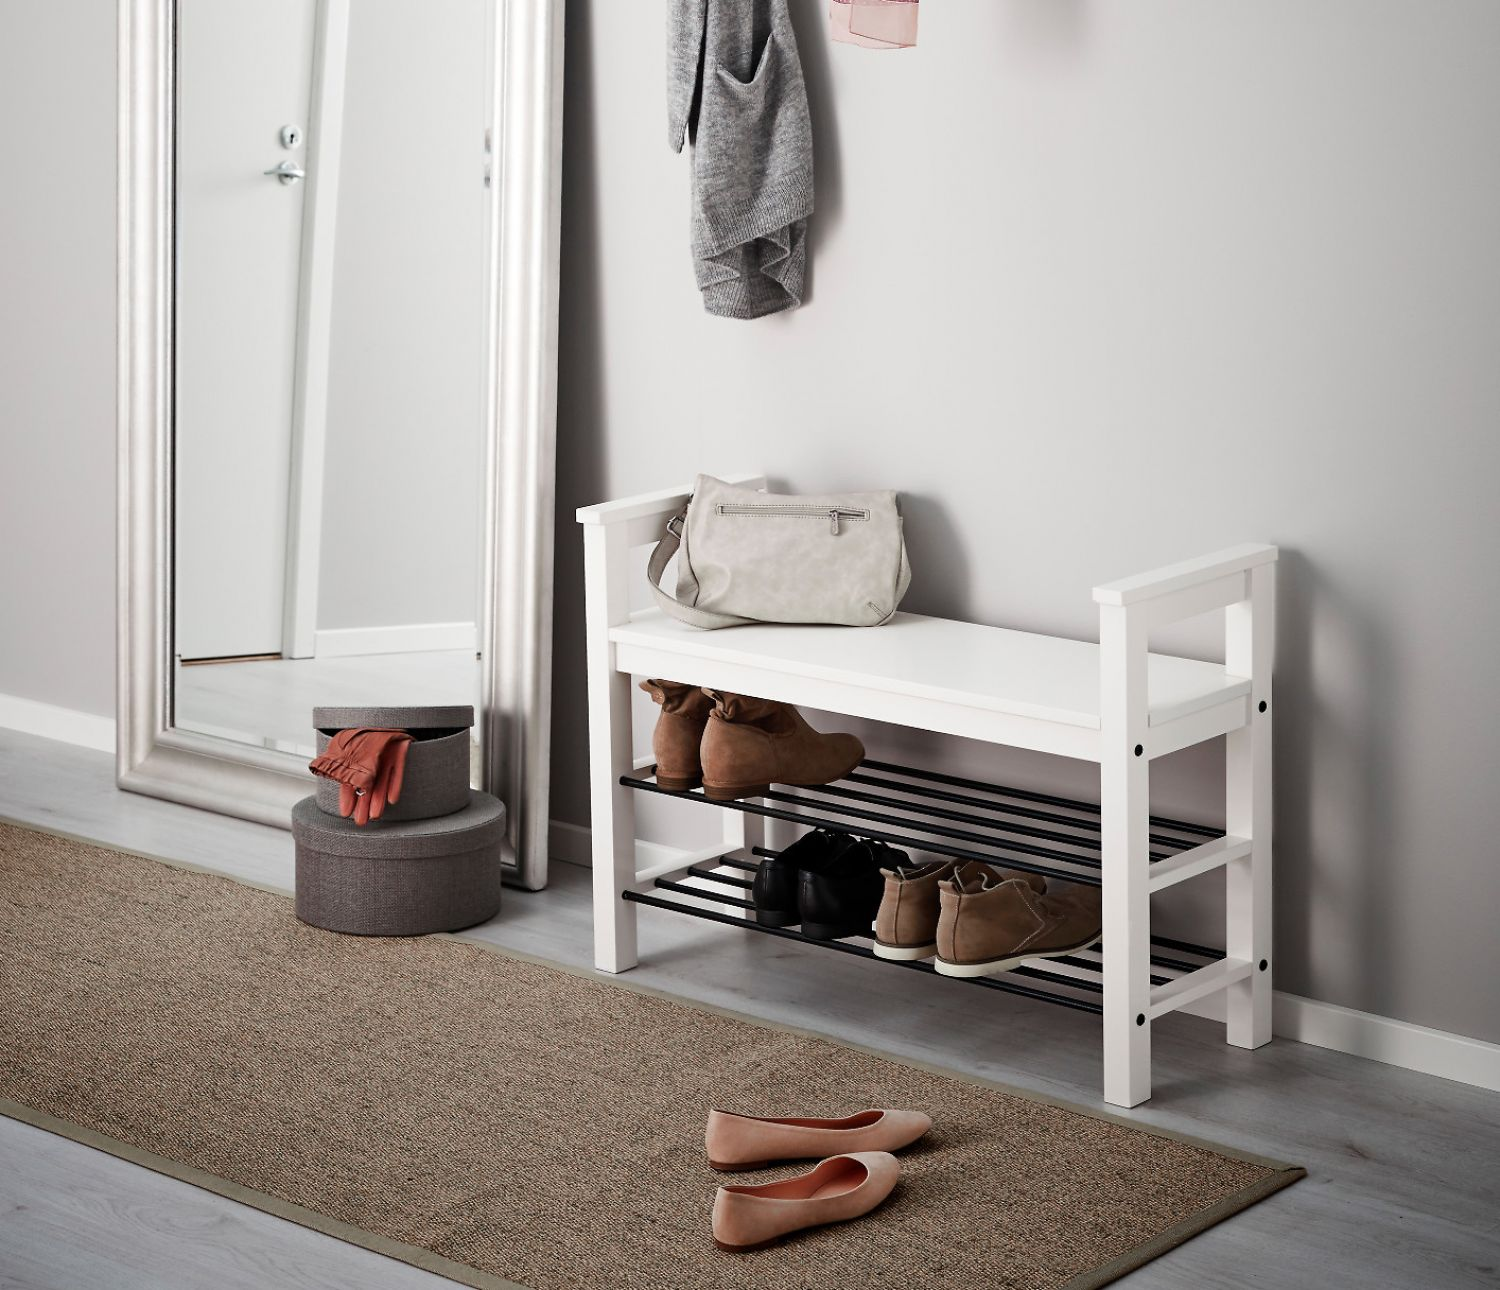 Schaukasten Holz Ikea Ikea Hemnes Bench With Shoe Storage Shoe Rack Shelf White Solid